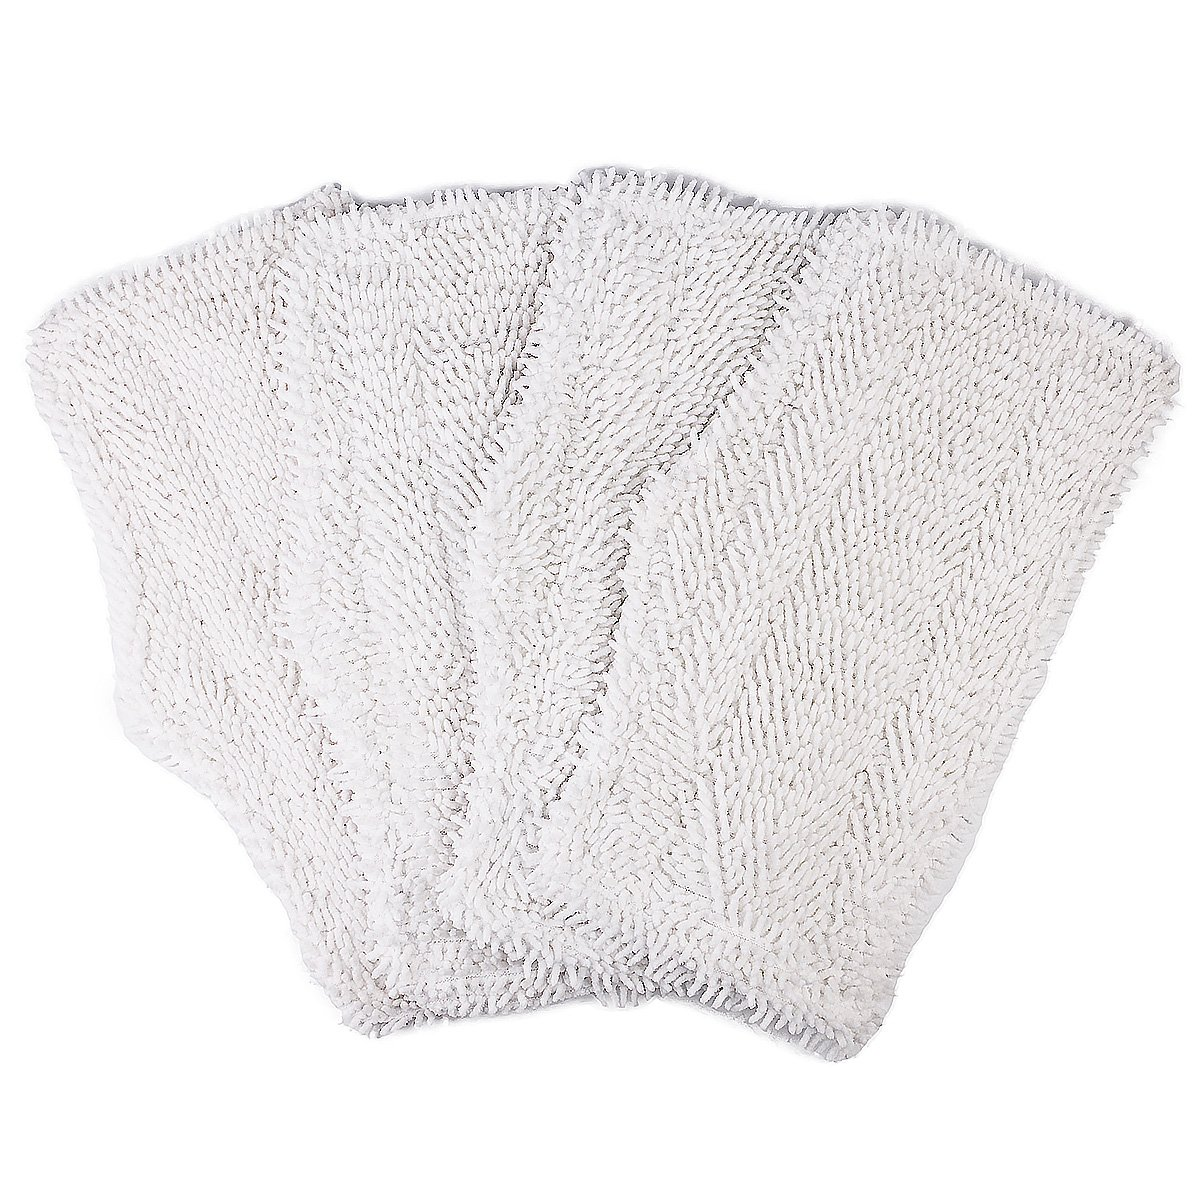 Flammi 4 Pack Replacement Washable Cleaning Pads Fits Shark Steam & Spray Mop SK410, SK435CO, SK460, SK140, SK141, S3101, S3250, S3251